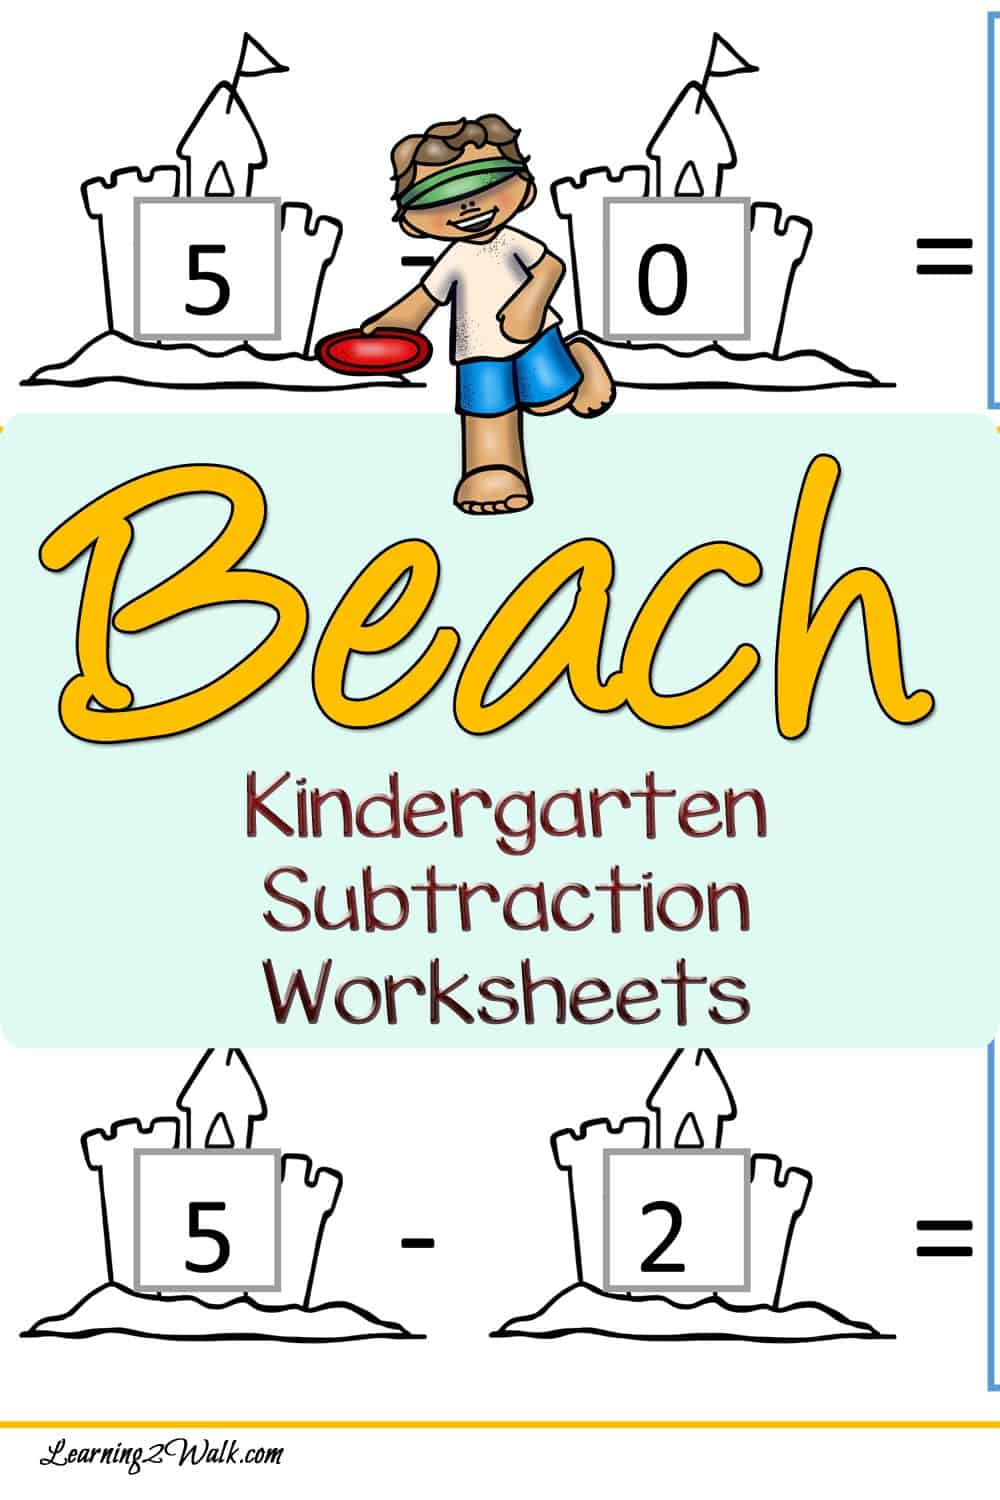 Sandcastles, umbrellas and the sun- don't you just love the beach? Here are a few beach kindergarten subtraction worksheets to work on those kindergarten math skills.